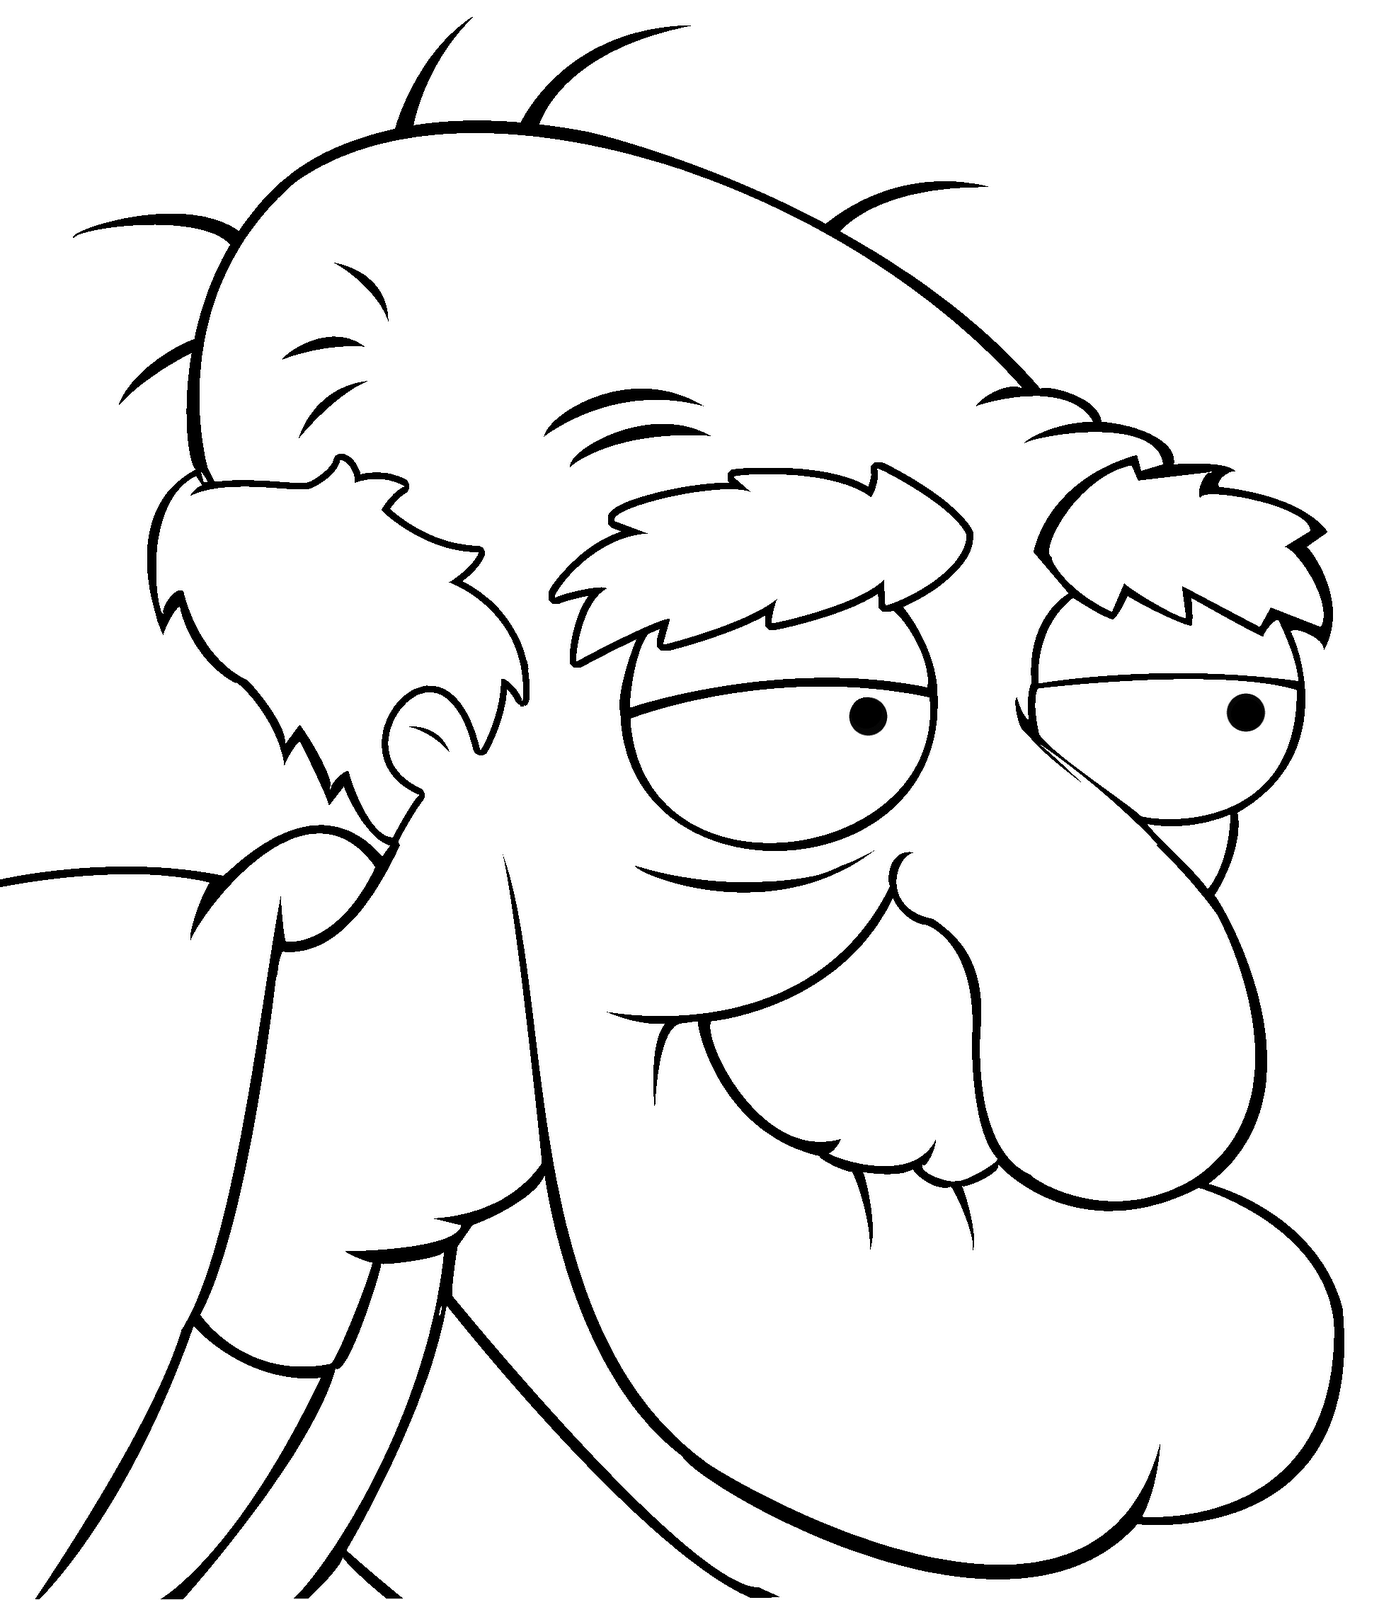 family guy herbert - Family Guy Coloring Pages